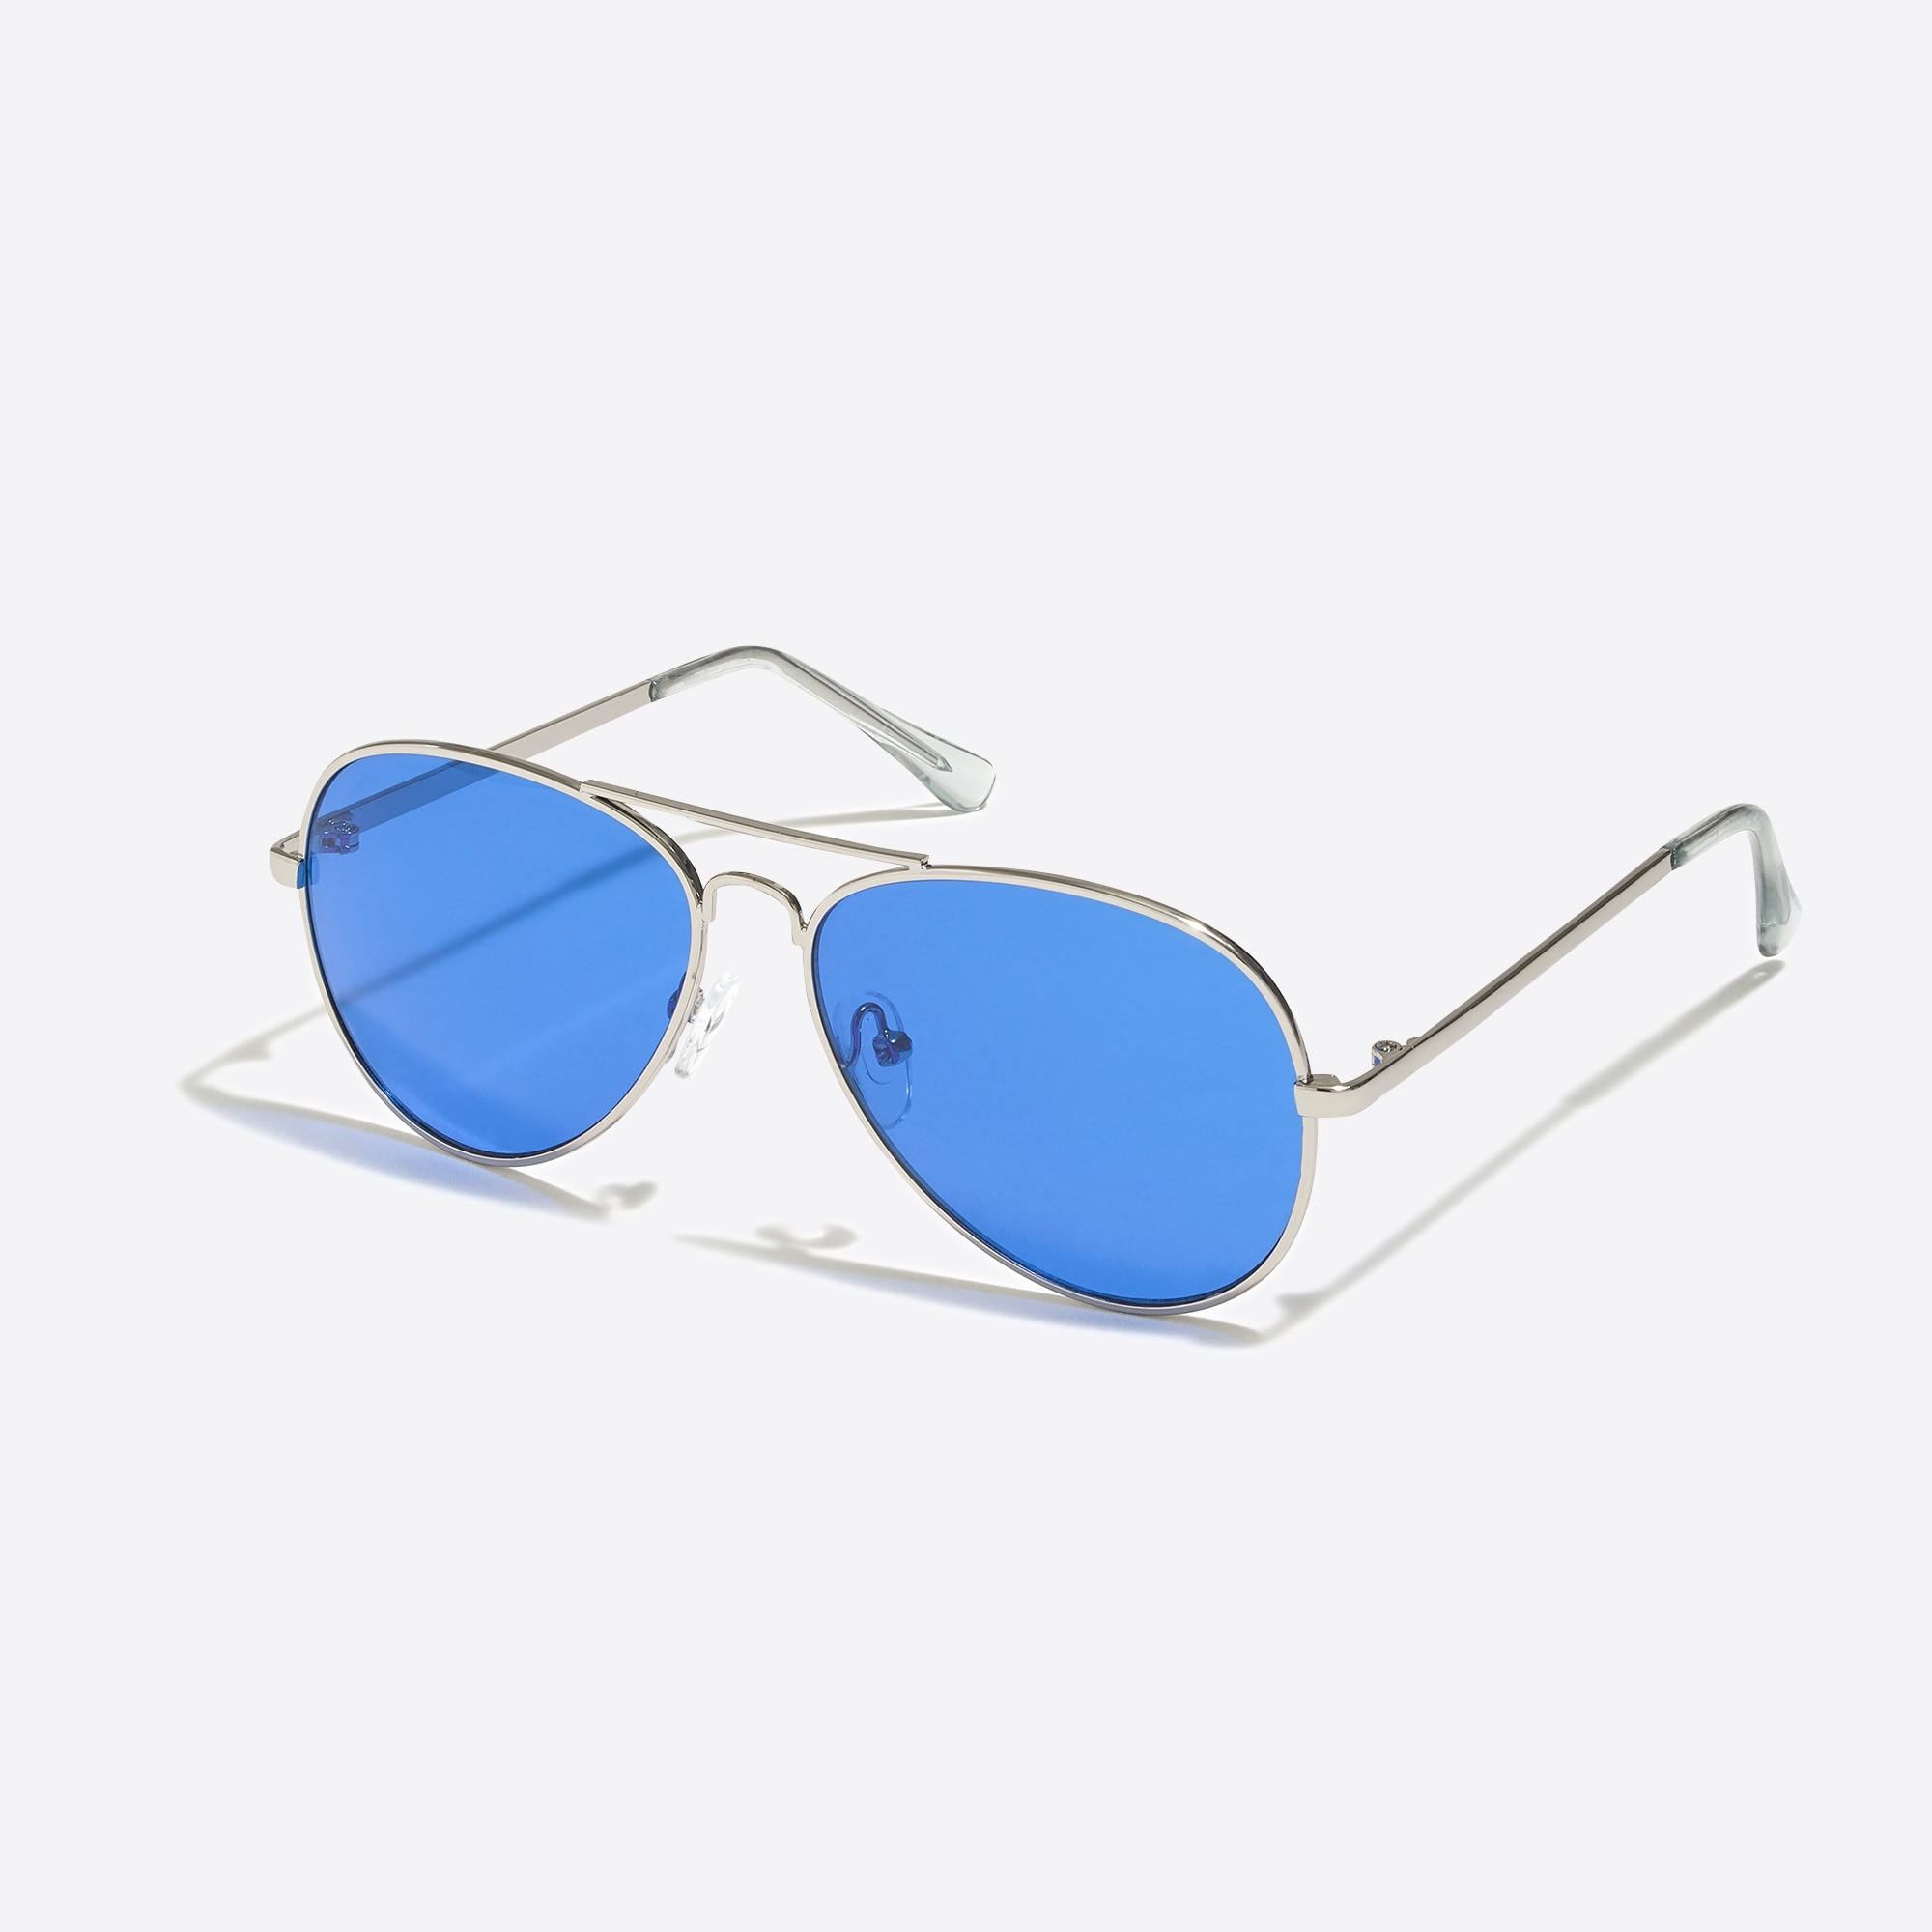 kids' metal aviator sunglasses : factoryboys sunglasses